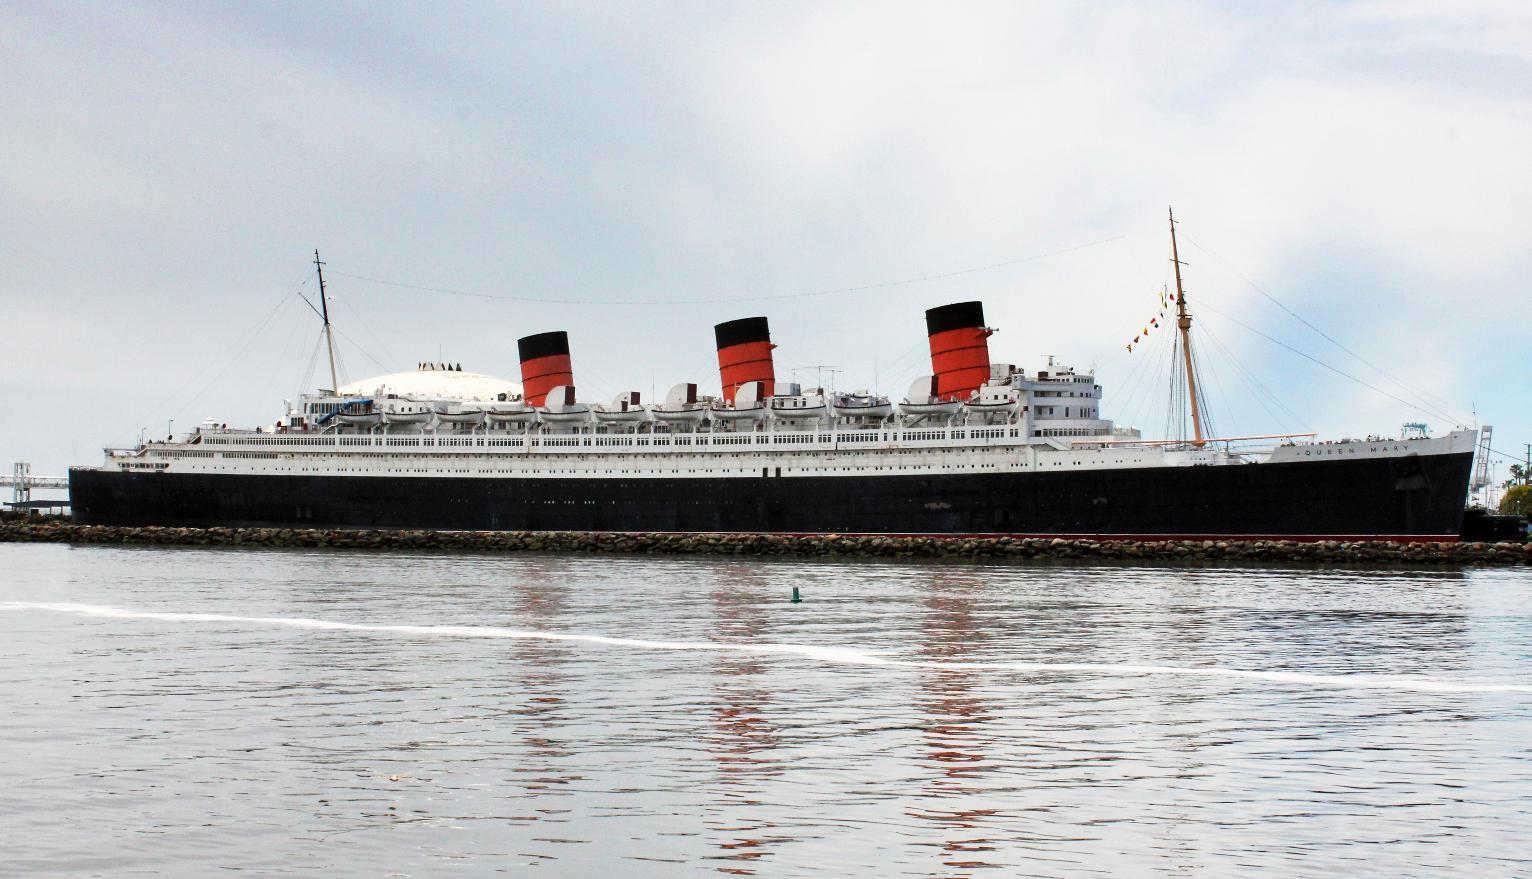 Survey: Queen Mary Ship Corroded, Fixes Could Near $300M ...